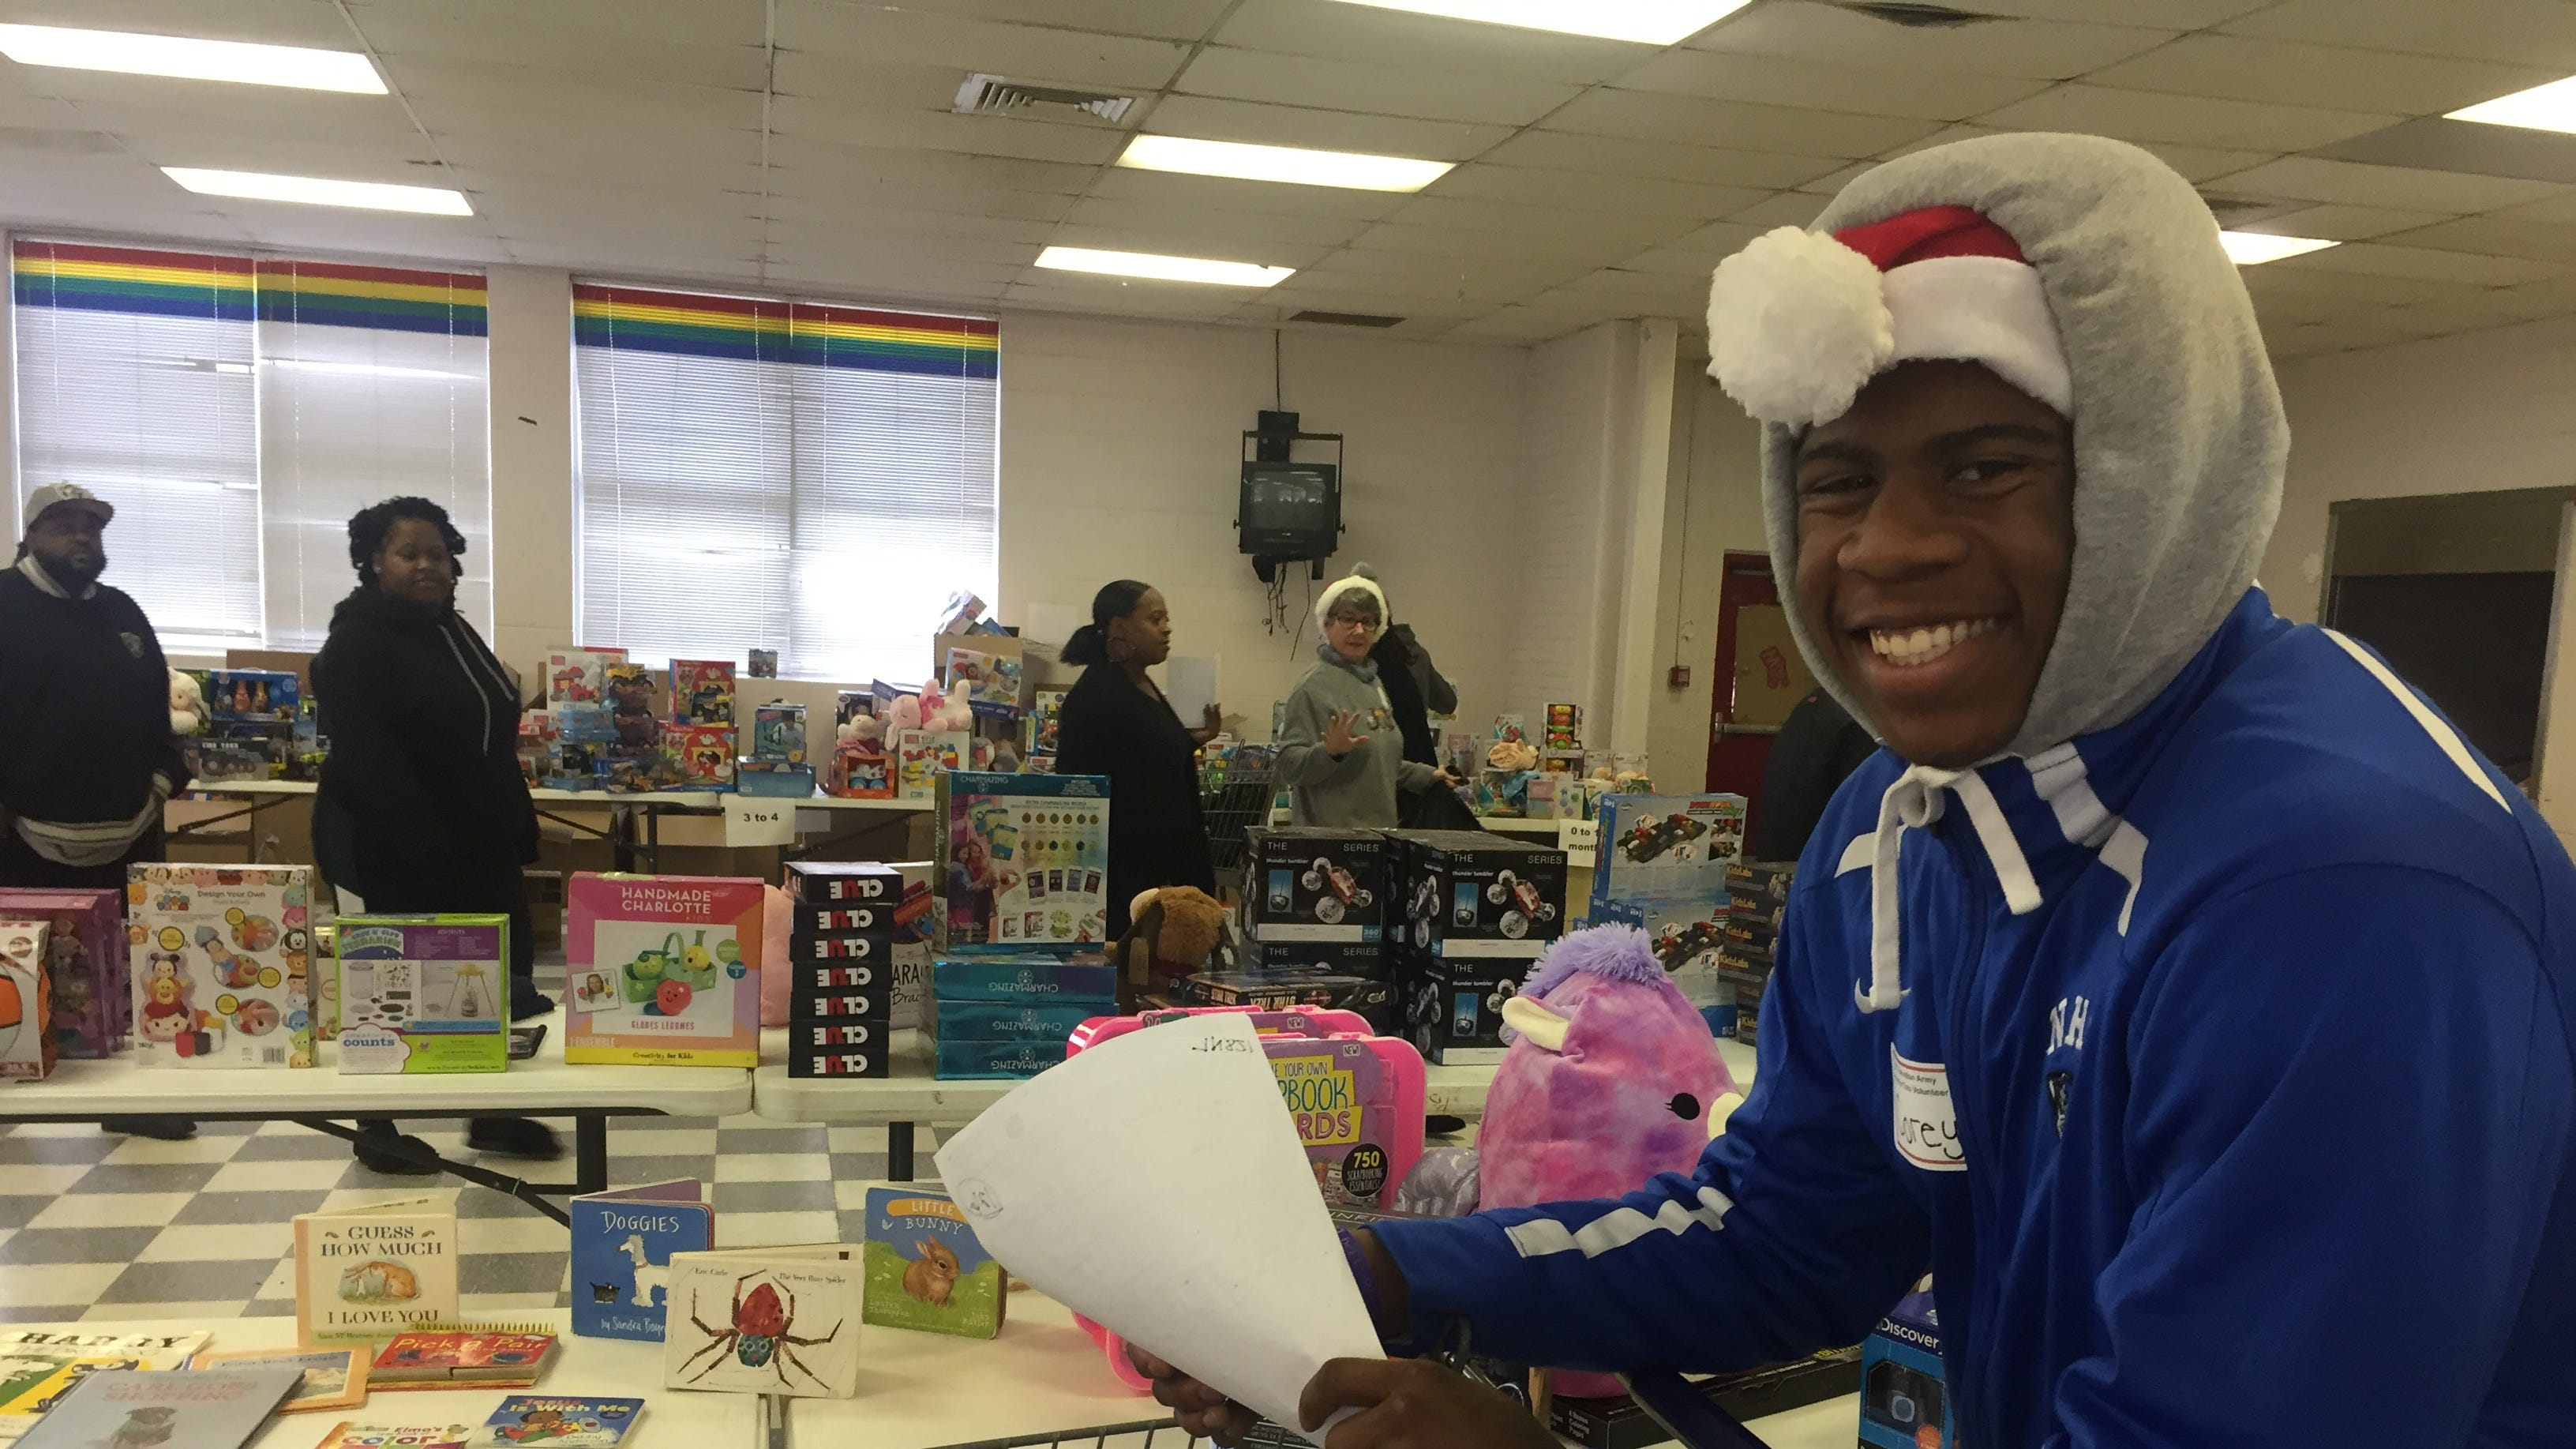 Corey Smith Jr., a Northampton High School senior, volunteers during the Northampton Department of Social Services Angel Tree gift and toy distribution at the former Northampton Middle School in Machipongo, Virginia on Thursday, Dec. 13, 2018.